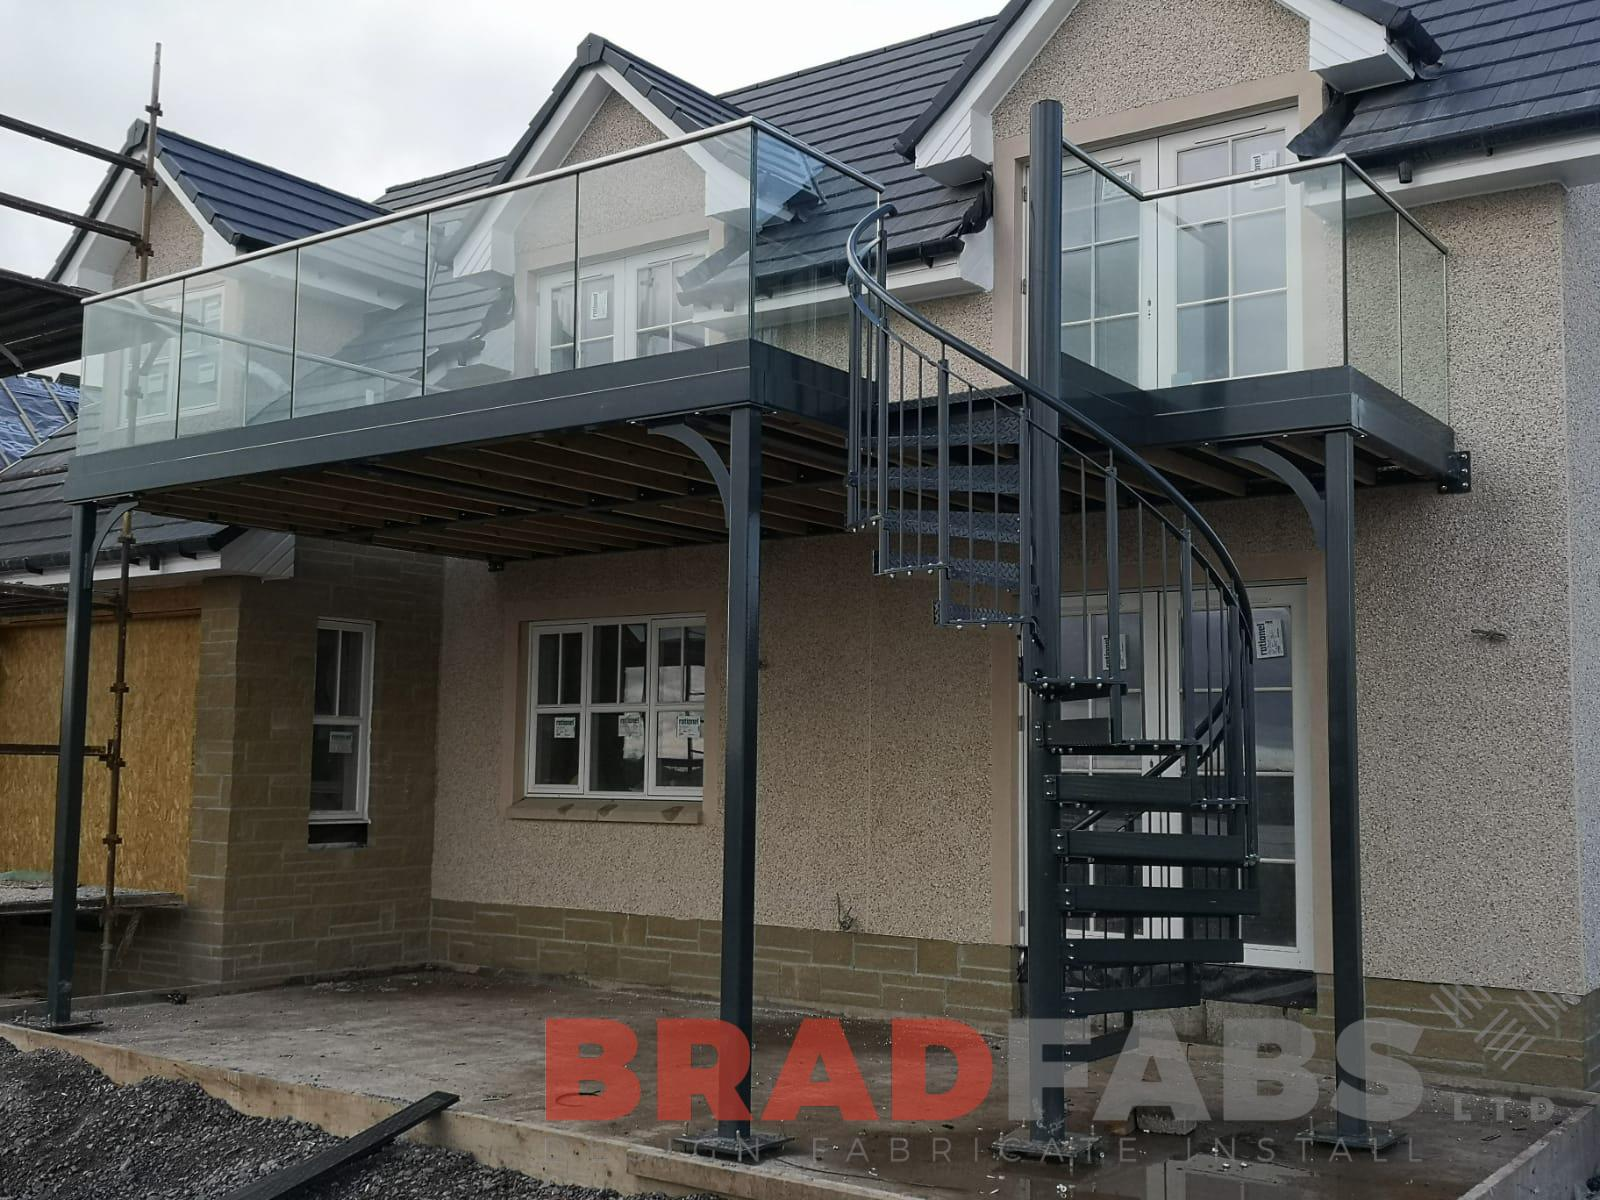 large balcony with three support legs, manufactured in mild steel, galvanised and powder coated with spiral staircase at the end, infinity glass balustrade and stainless steel handrail on the balcony and vertical bar balustrade on the spiral by Bradfabs